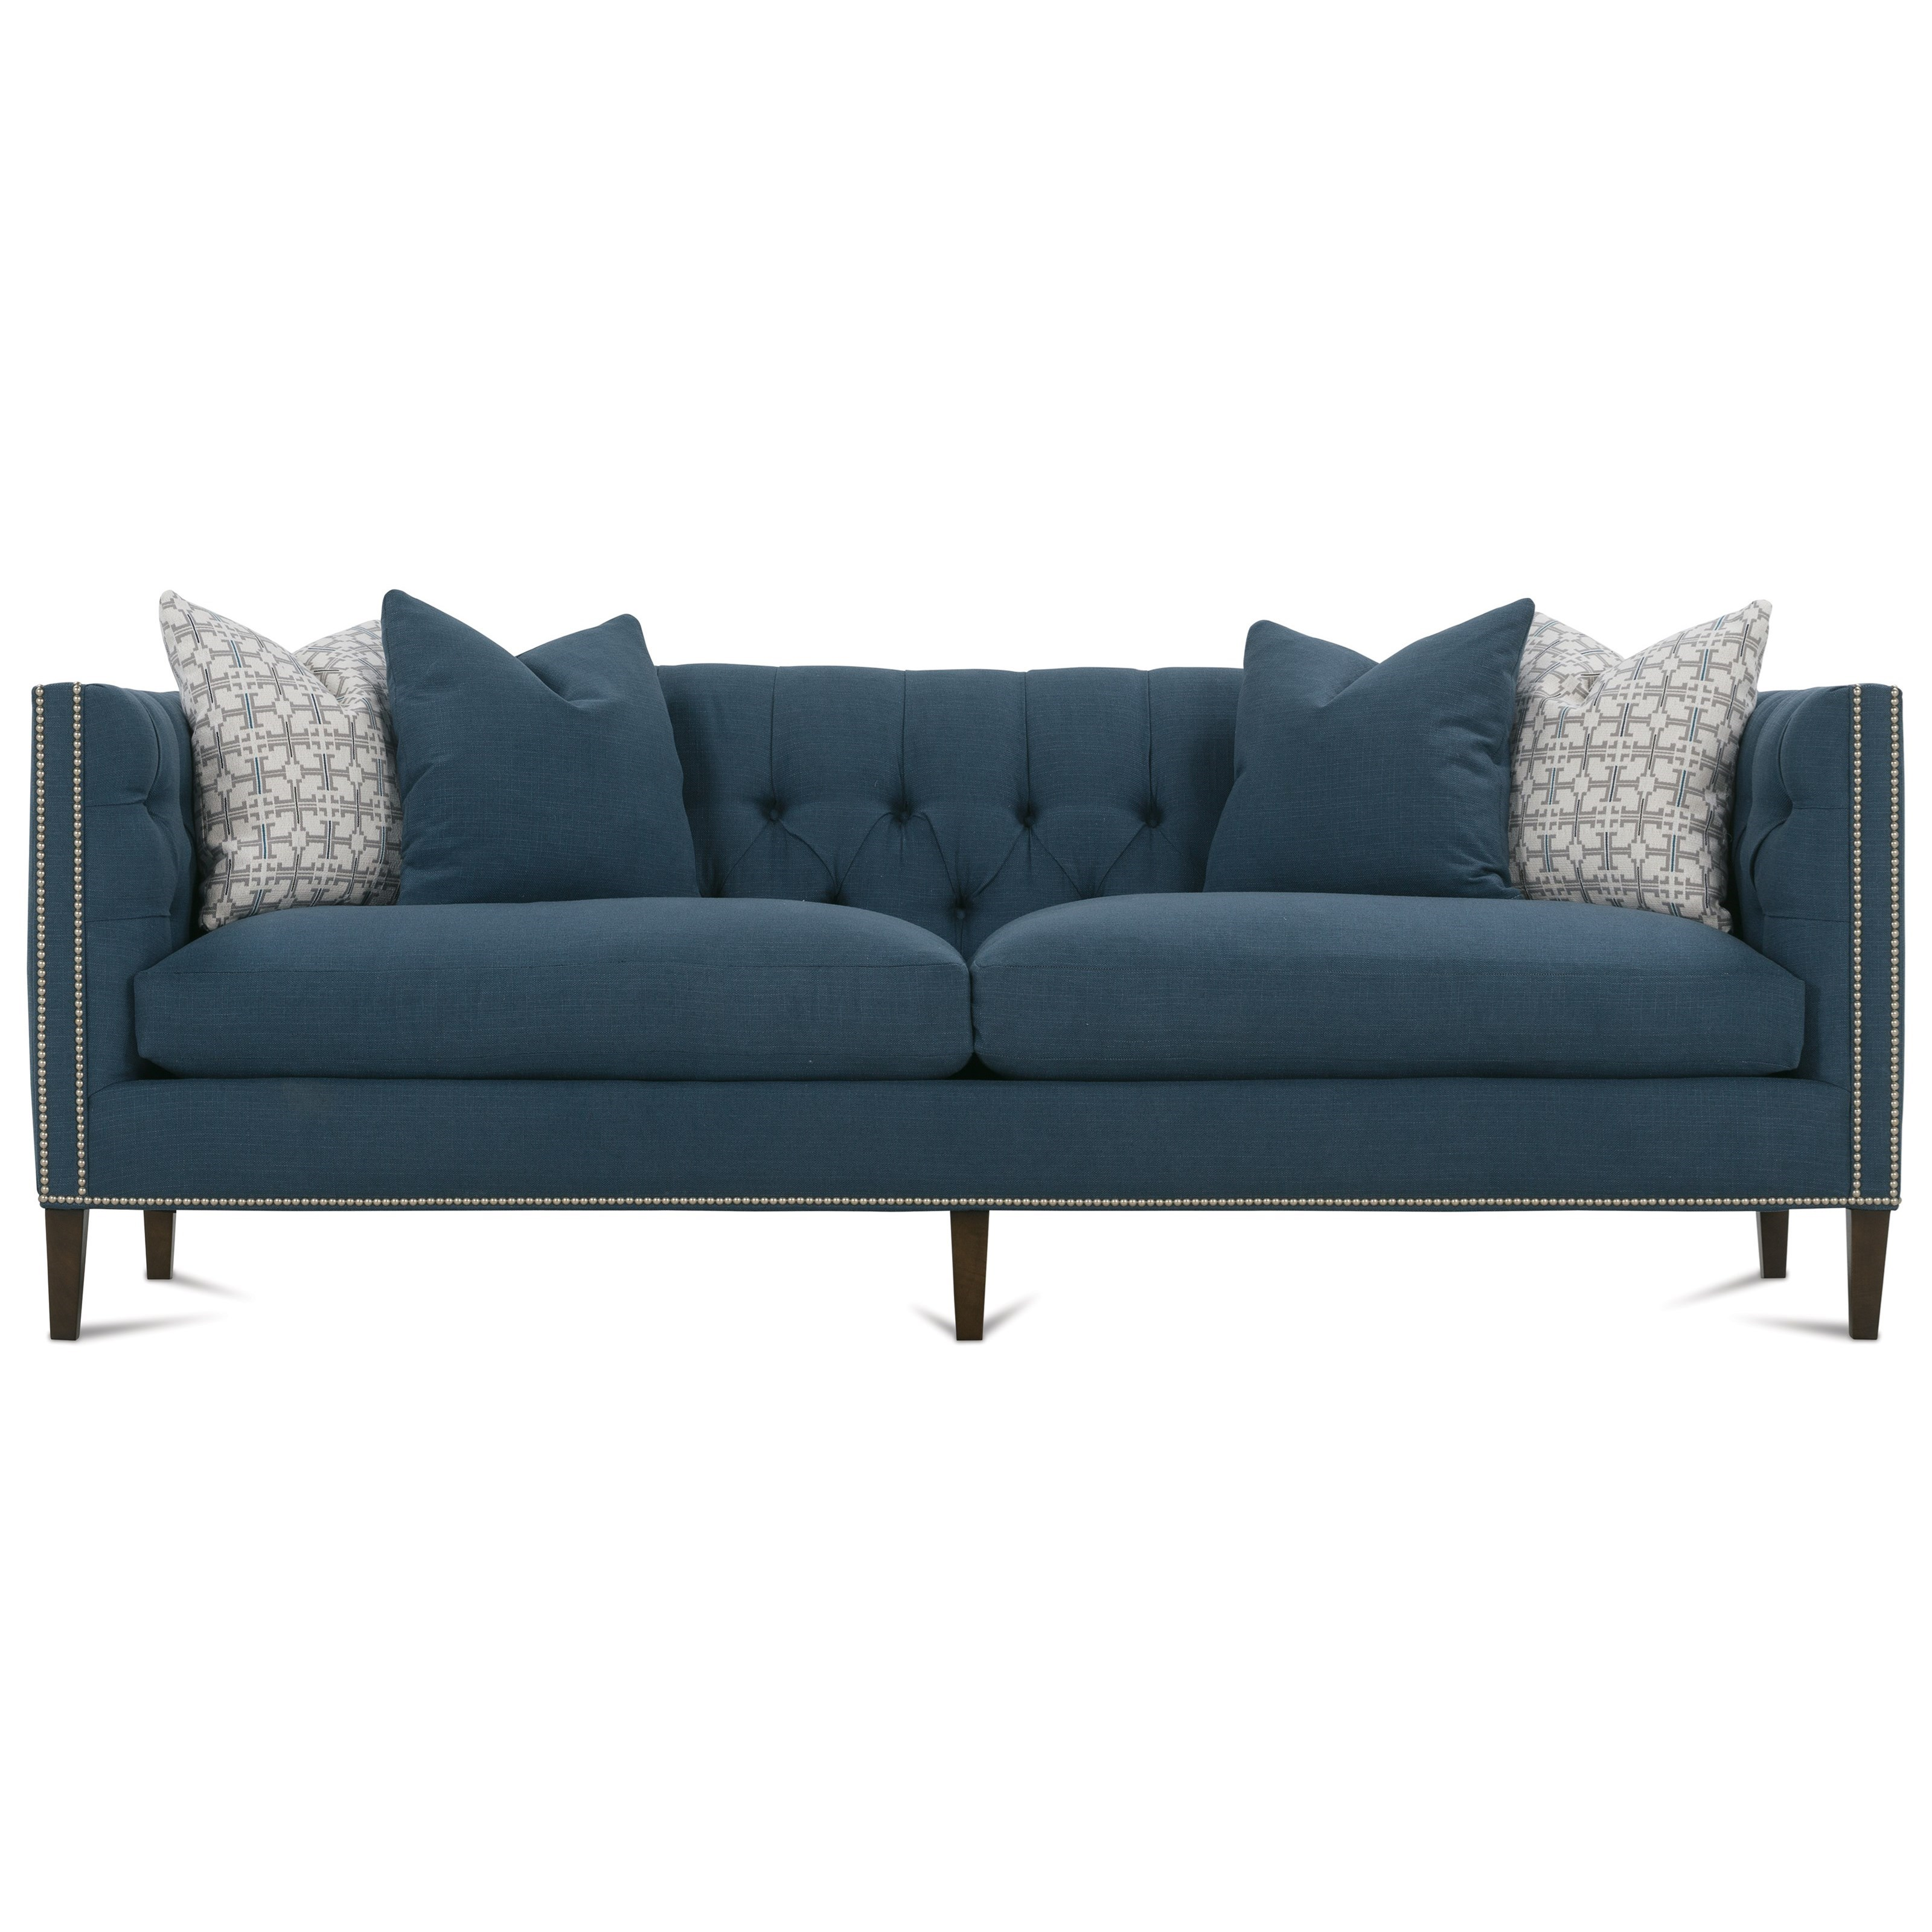 Brette 2 Cushion Sofa by Robin Bruce at Saugerties Furniture Mart